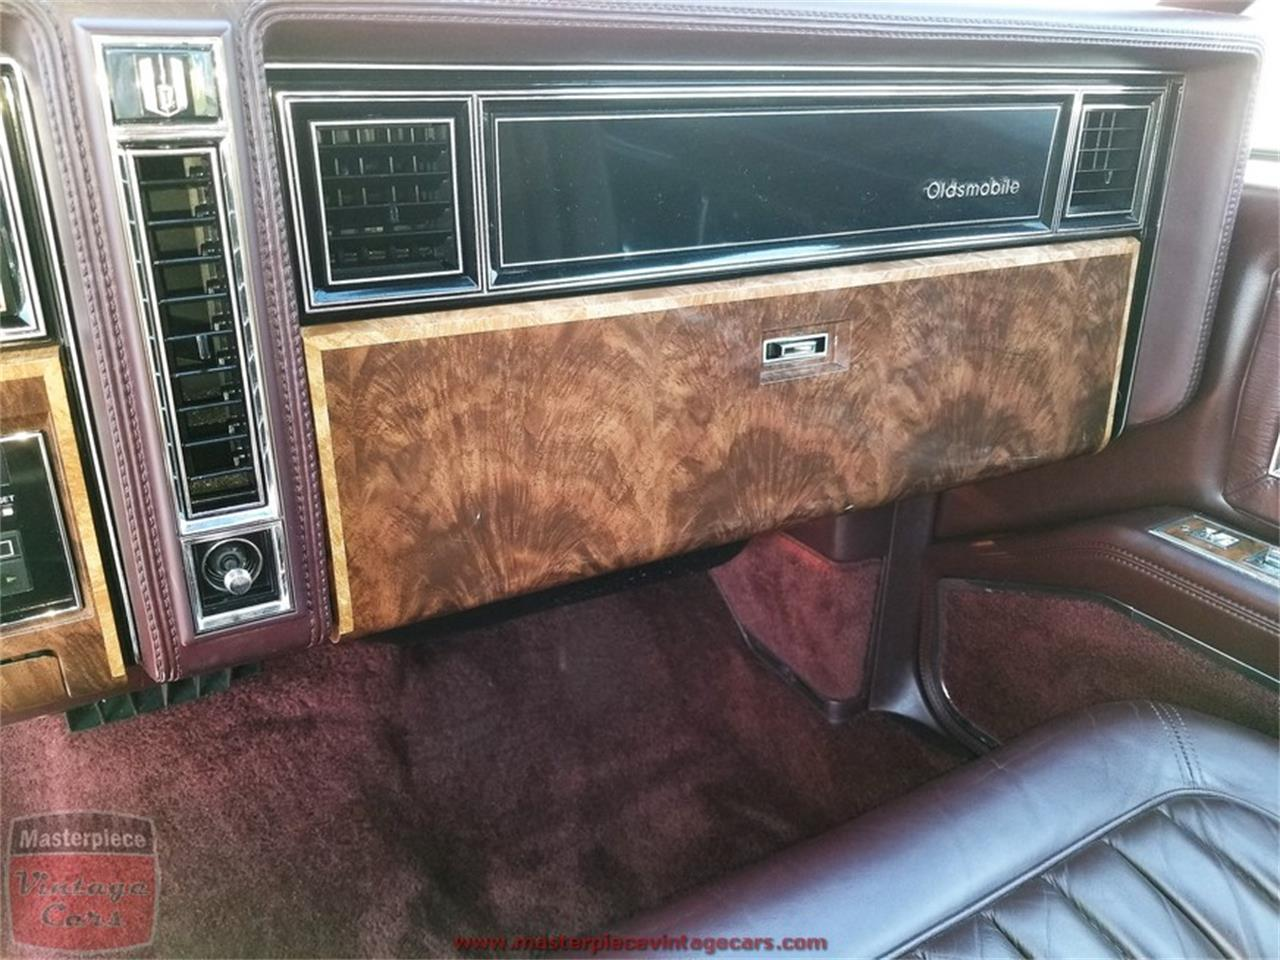 Large Picture of 1985 Oldsmobile Toronado located in Indiana - $5,950.00 Offered by Masterpiece Vintage Cars - Q4ZA